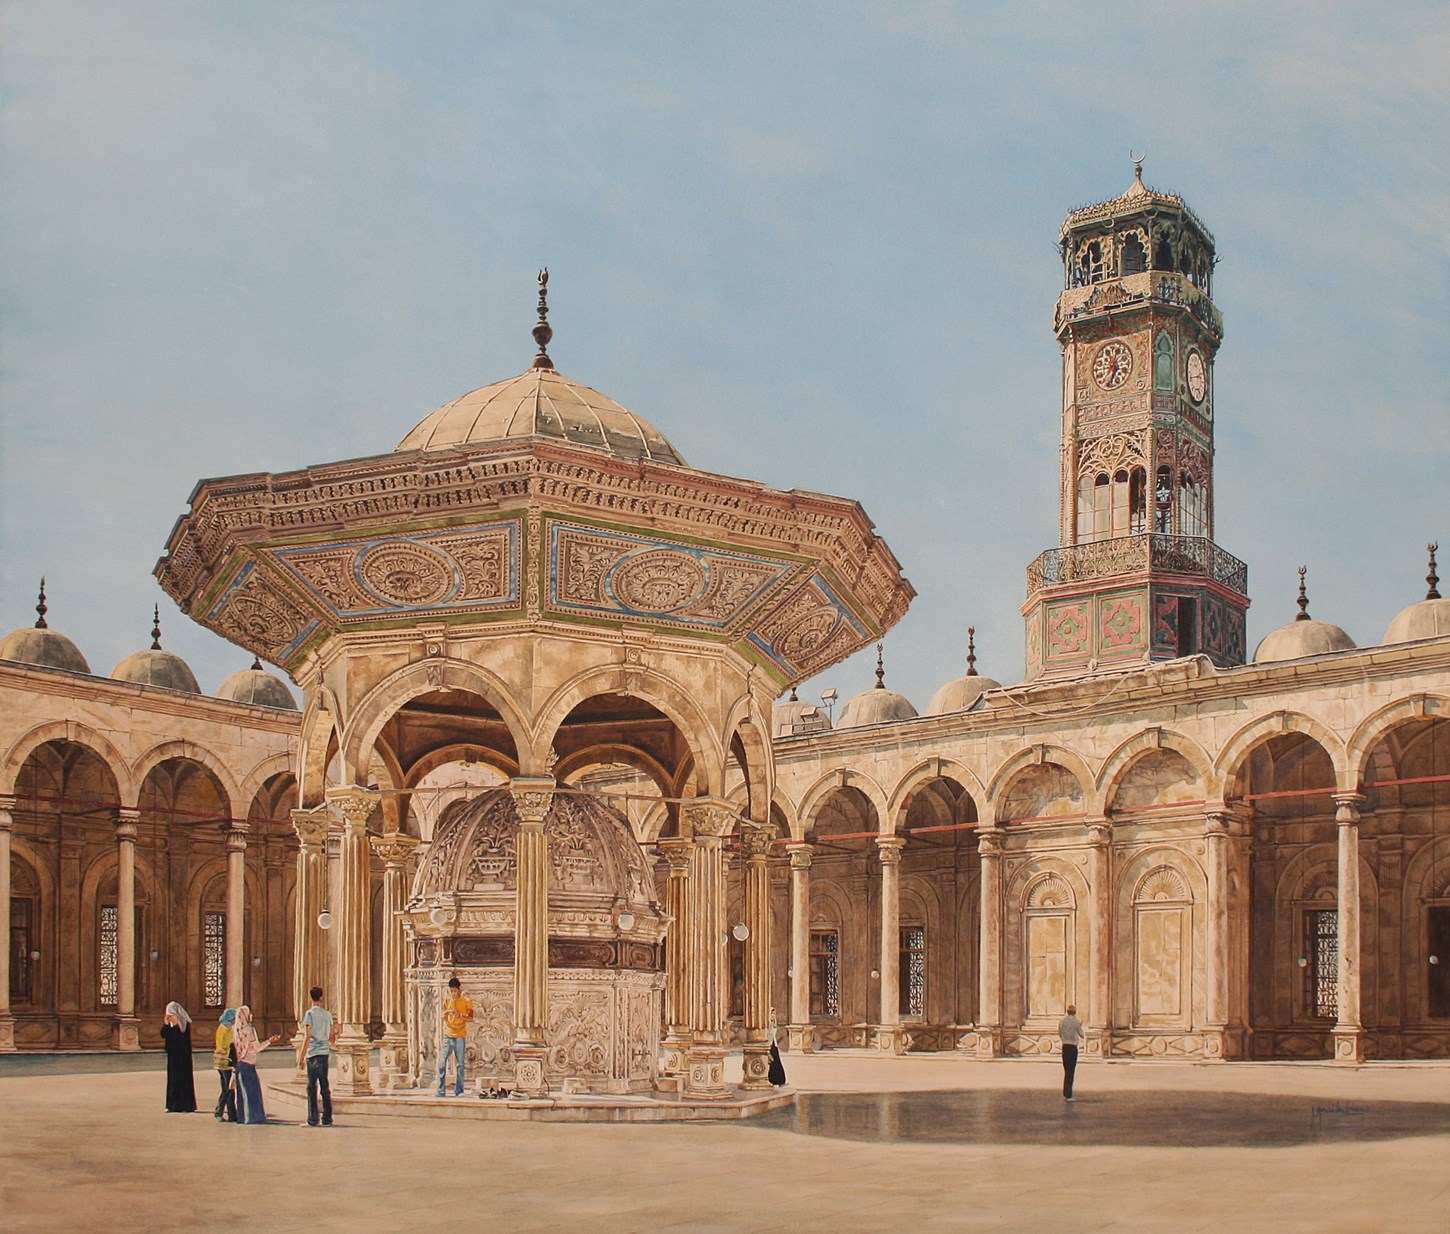 Mosque of Mohammed Ali, Cairo